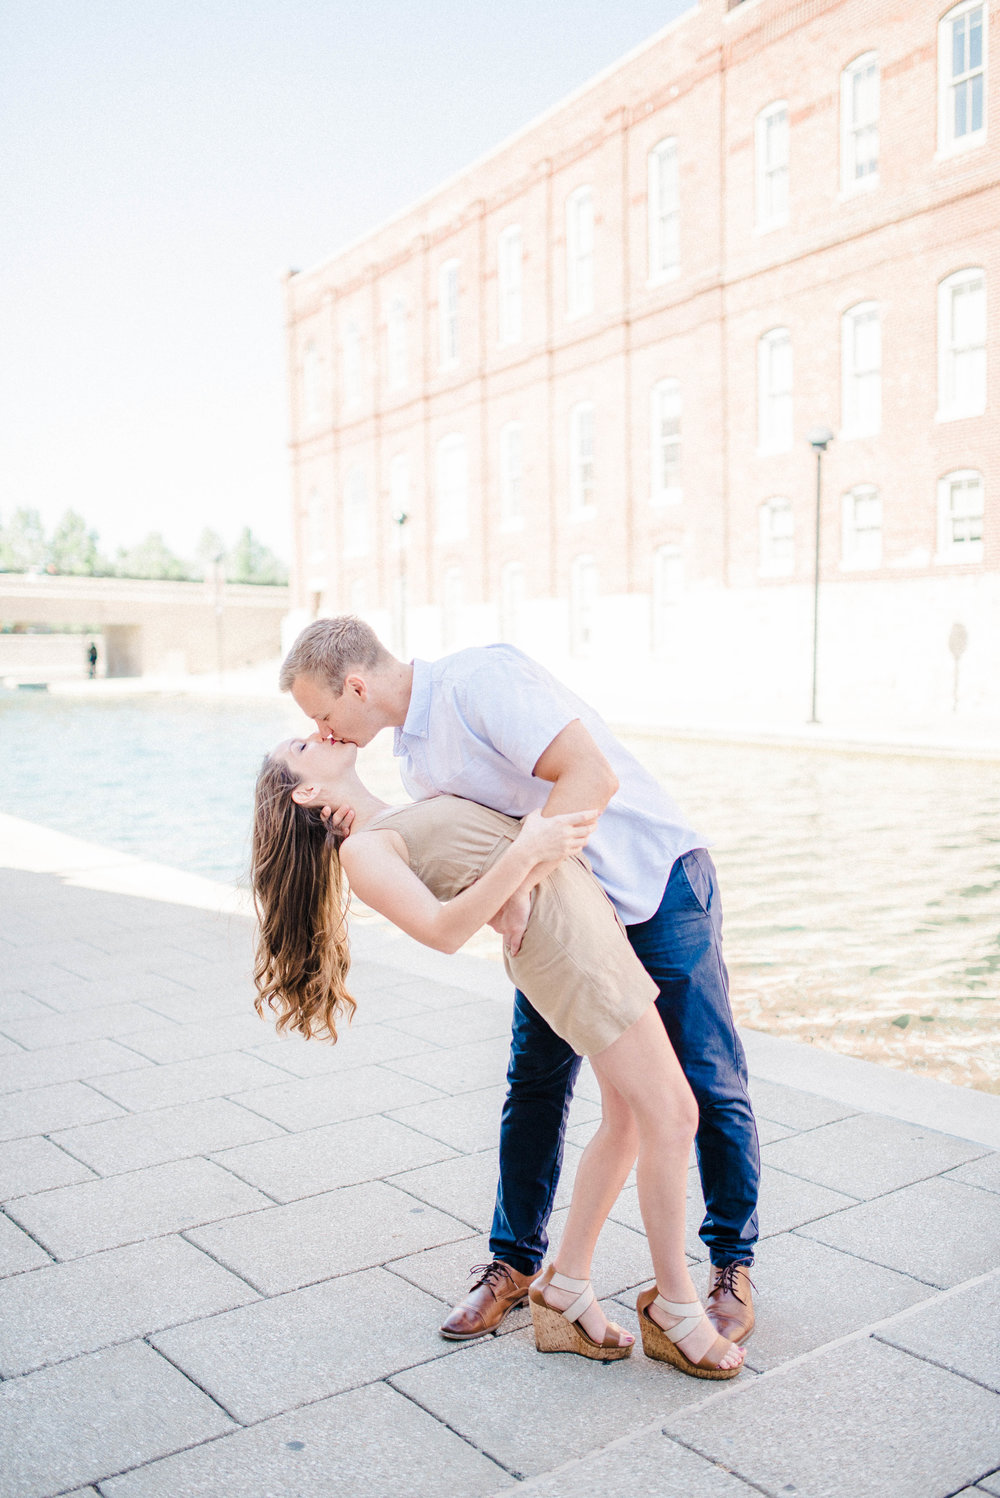 Bright and Fun Morning Engagement Photography Session on the Canal in Downtown Indianapolis, IN | Romantic Elopement & Destination Wedding Photographers | Katerina Marie Photography - www.katmariepad.com